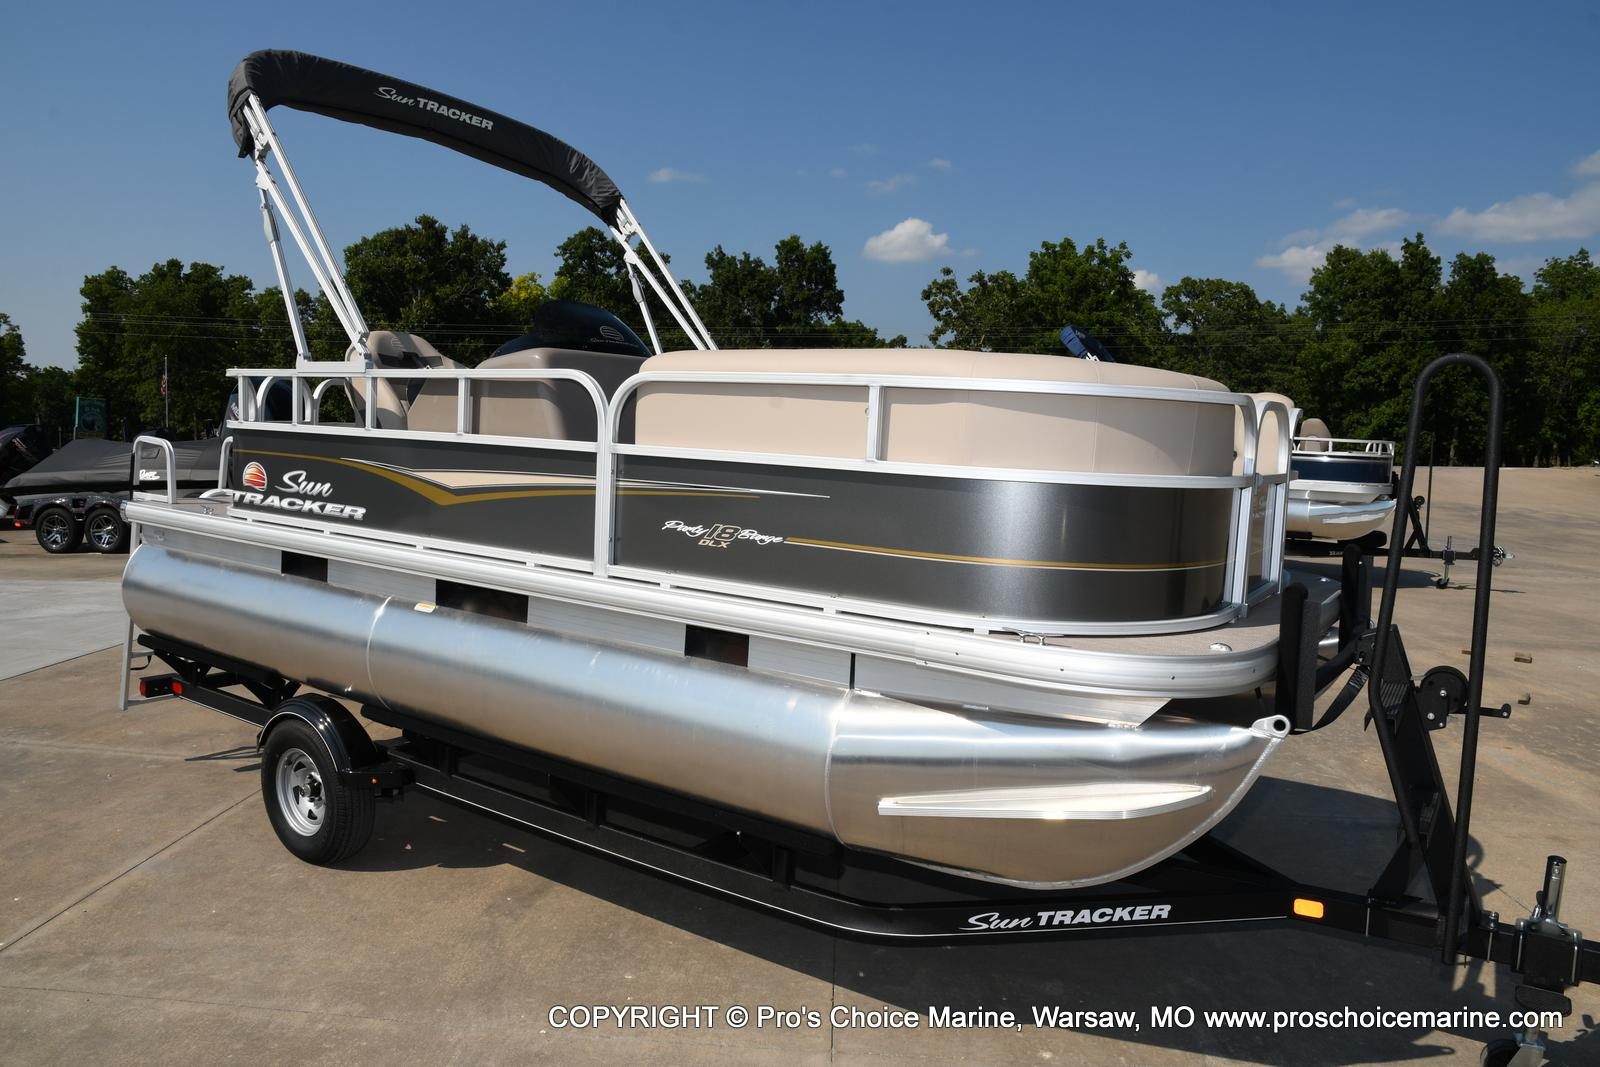 2021 Sun Tracker boat for sale, model of the boat is Party Barge 18 DLX & Image # 27 of 50